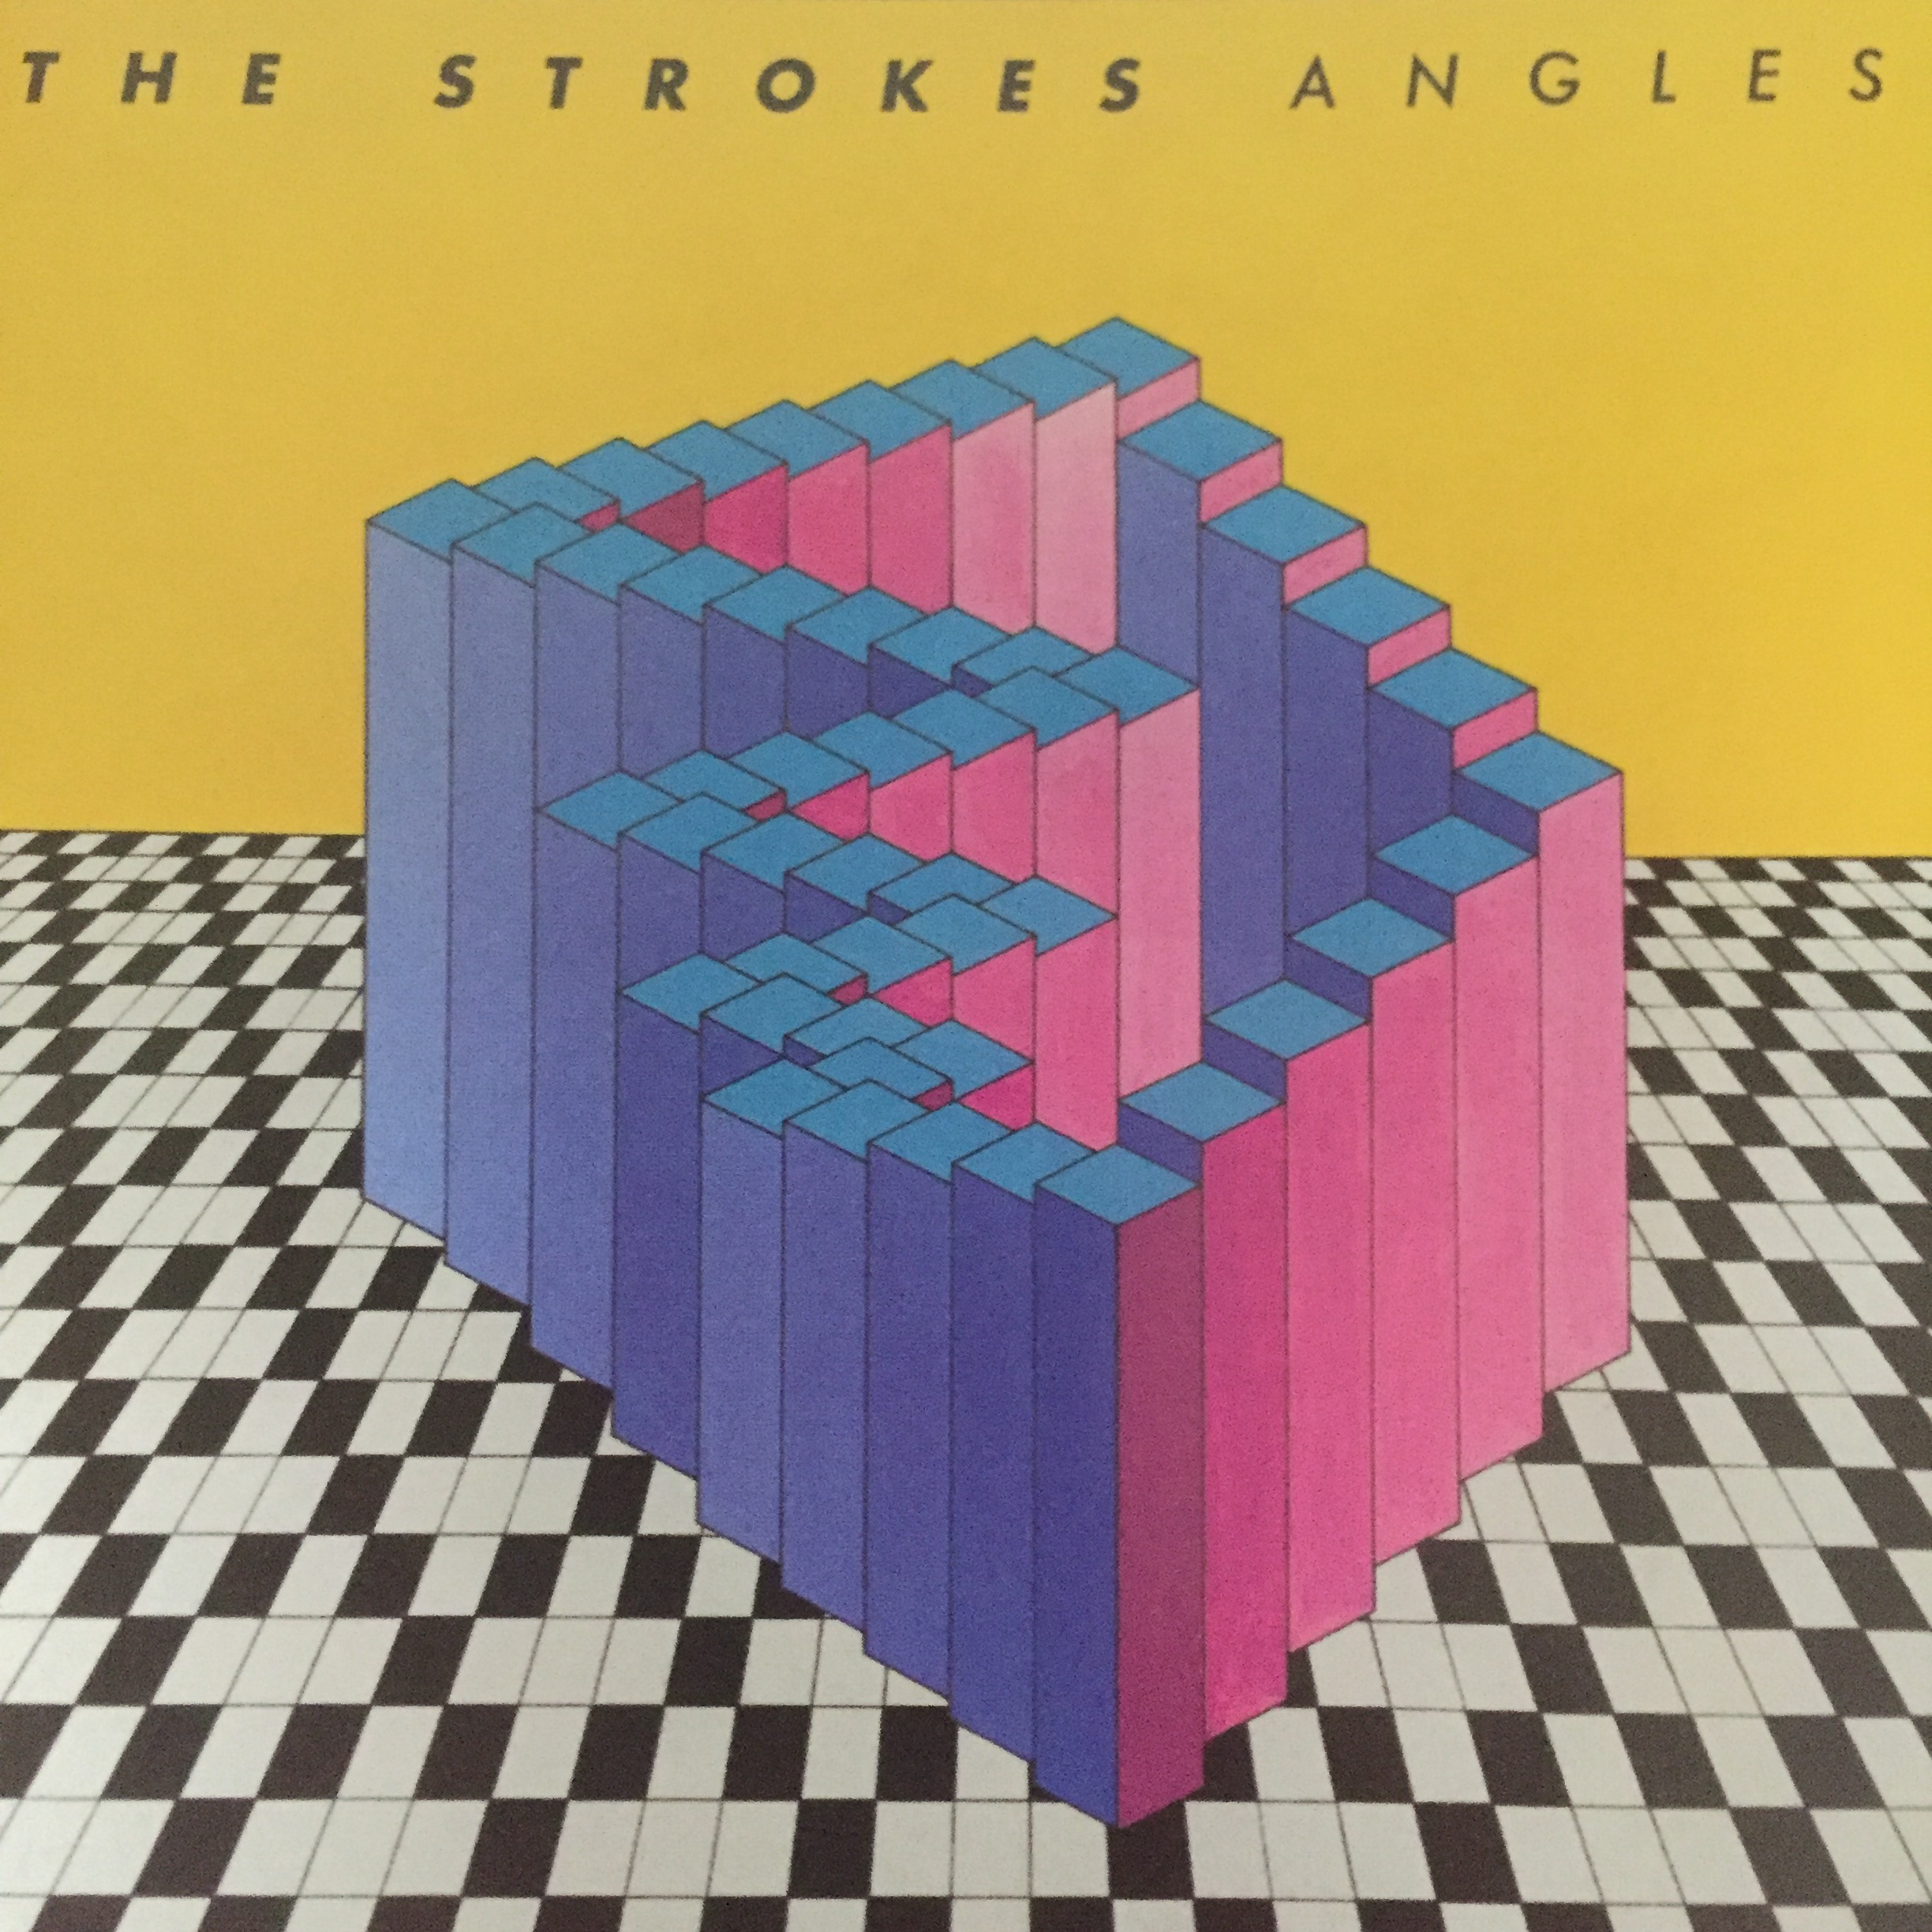 THE STROKES 「UNDER COVER OF DARKNESS」